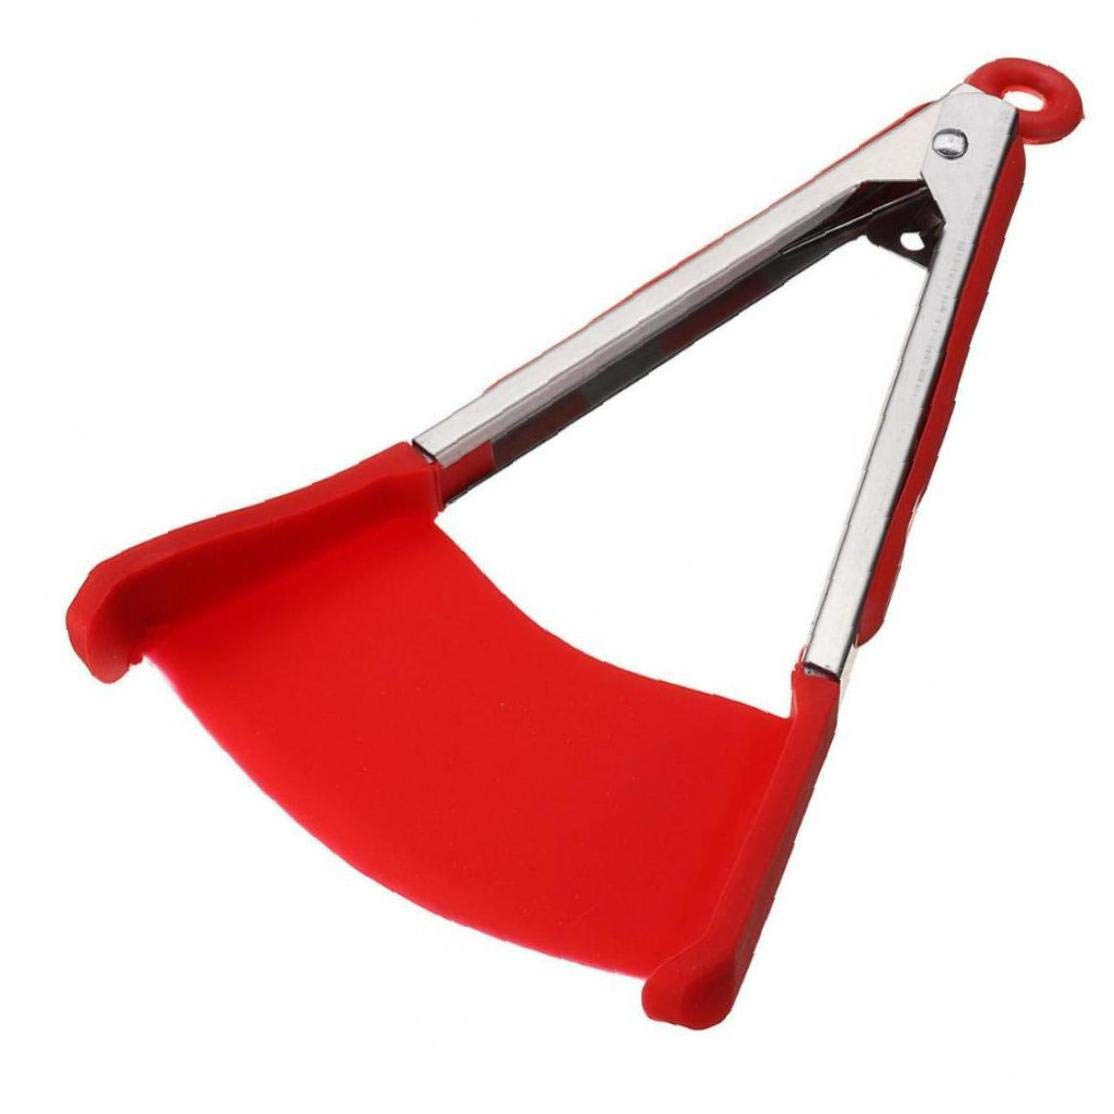 Angoter 2 in 1 Clever Kitchen Spatula and Tongs Non-Stick Heat Resistant Stainless Steel Frame Silicone Tongs Kitchen Gadget Random Color